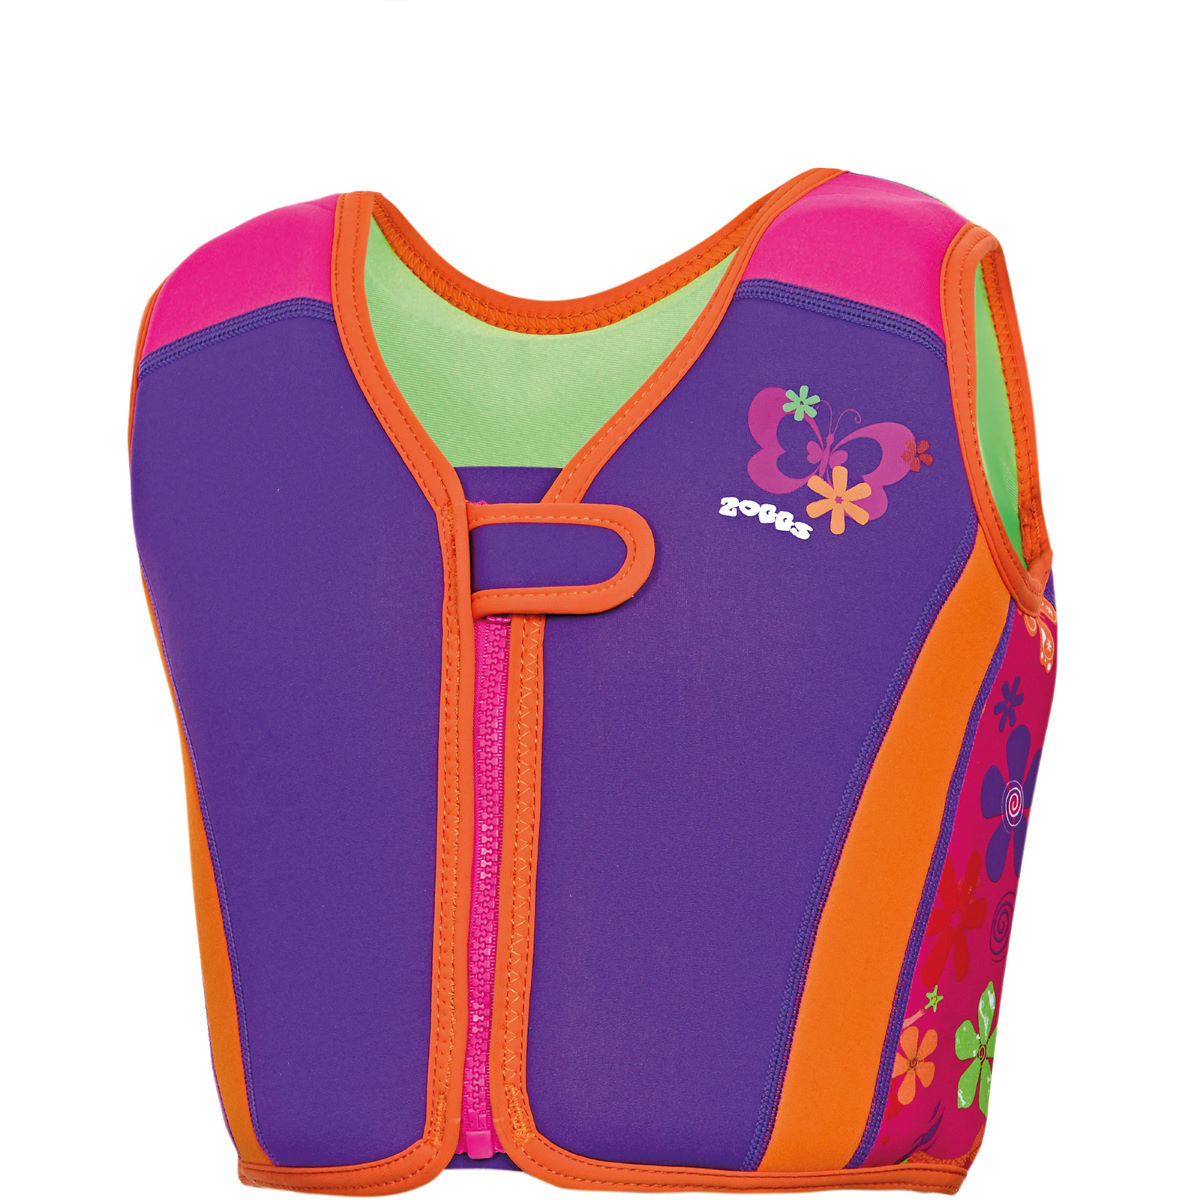 Gilet de flottaison Enfant Zoggs Deep Sea Swim - 4-5 years Rose